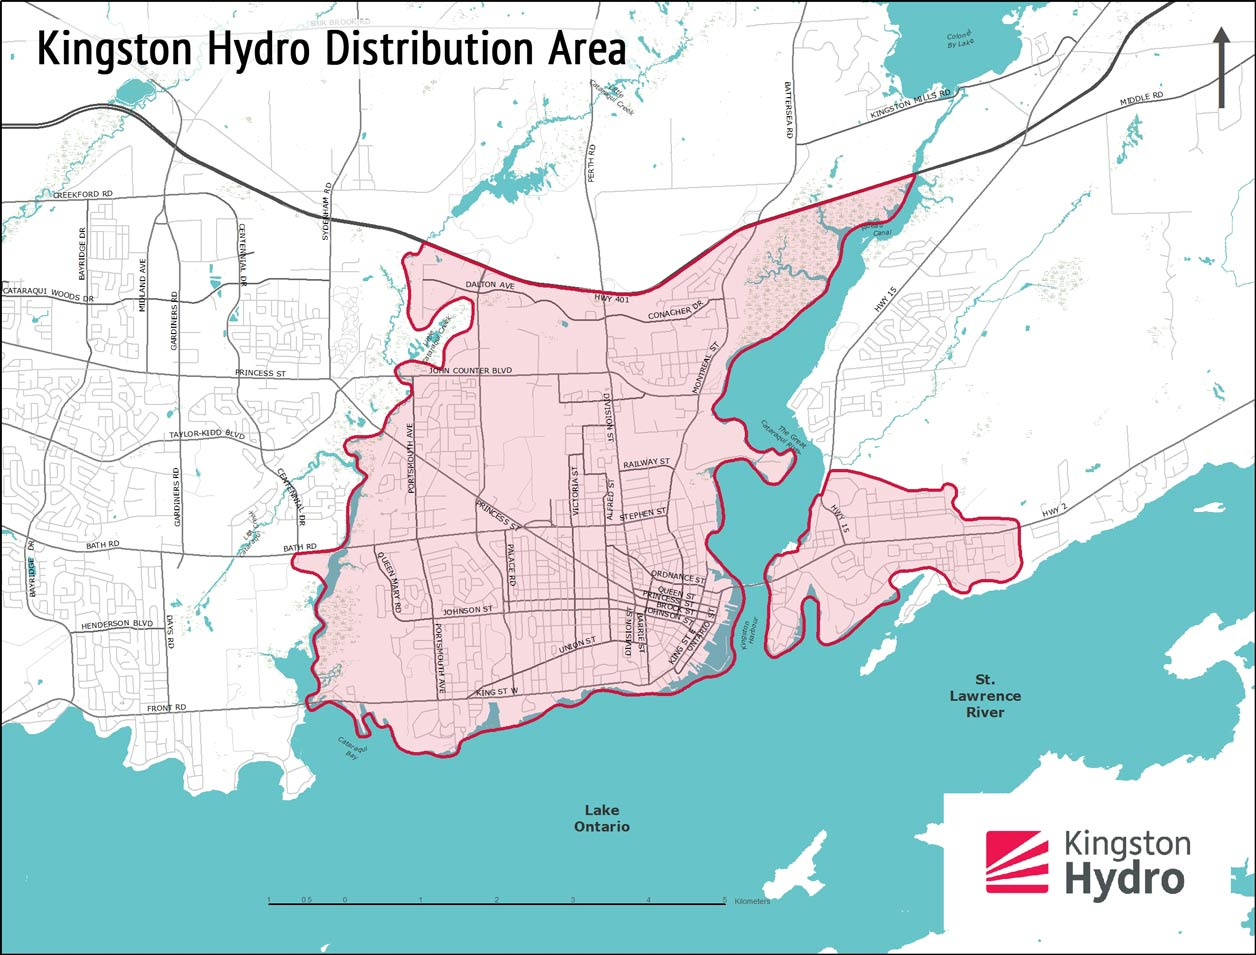 map of the Kingston Hydro distribution area